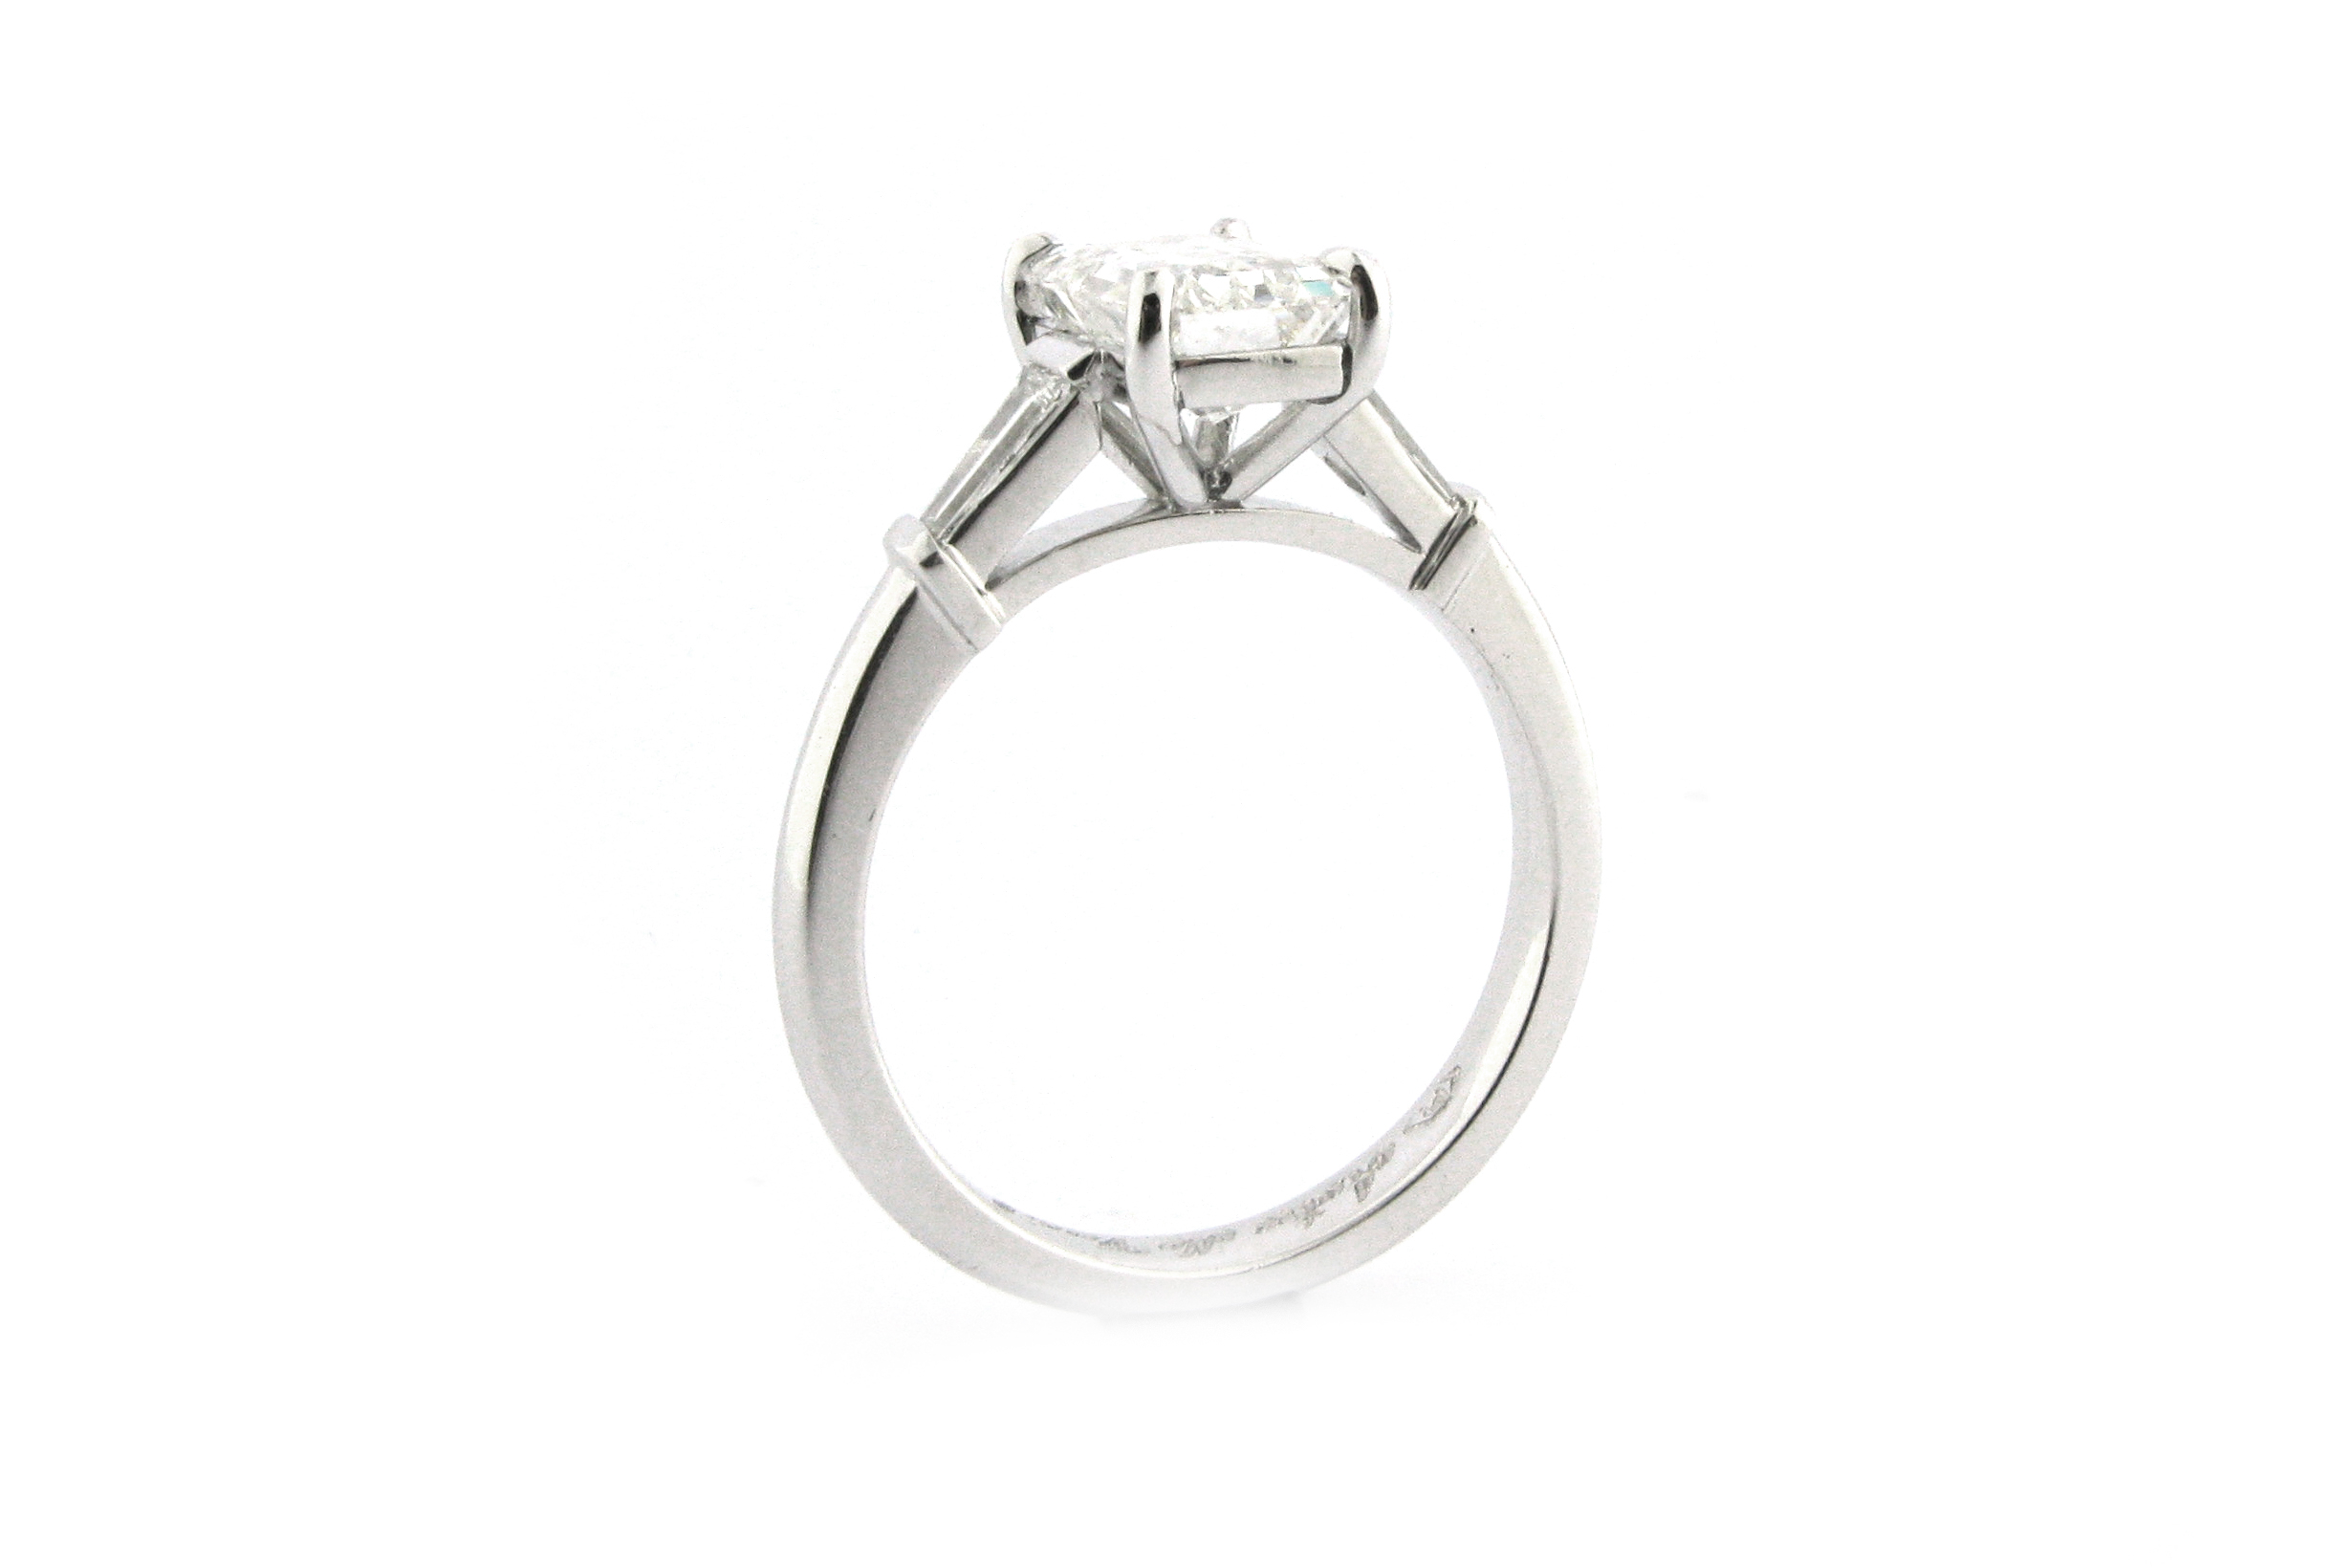 Emerald Cut Diamond With Tapered Baguette Side Stones With Regard To Heart Shaped Engagement Rings With Tapered Baguette Side Stones (View 15 of 25)